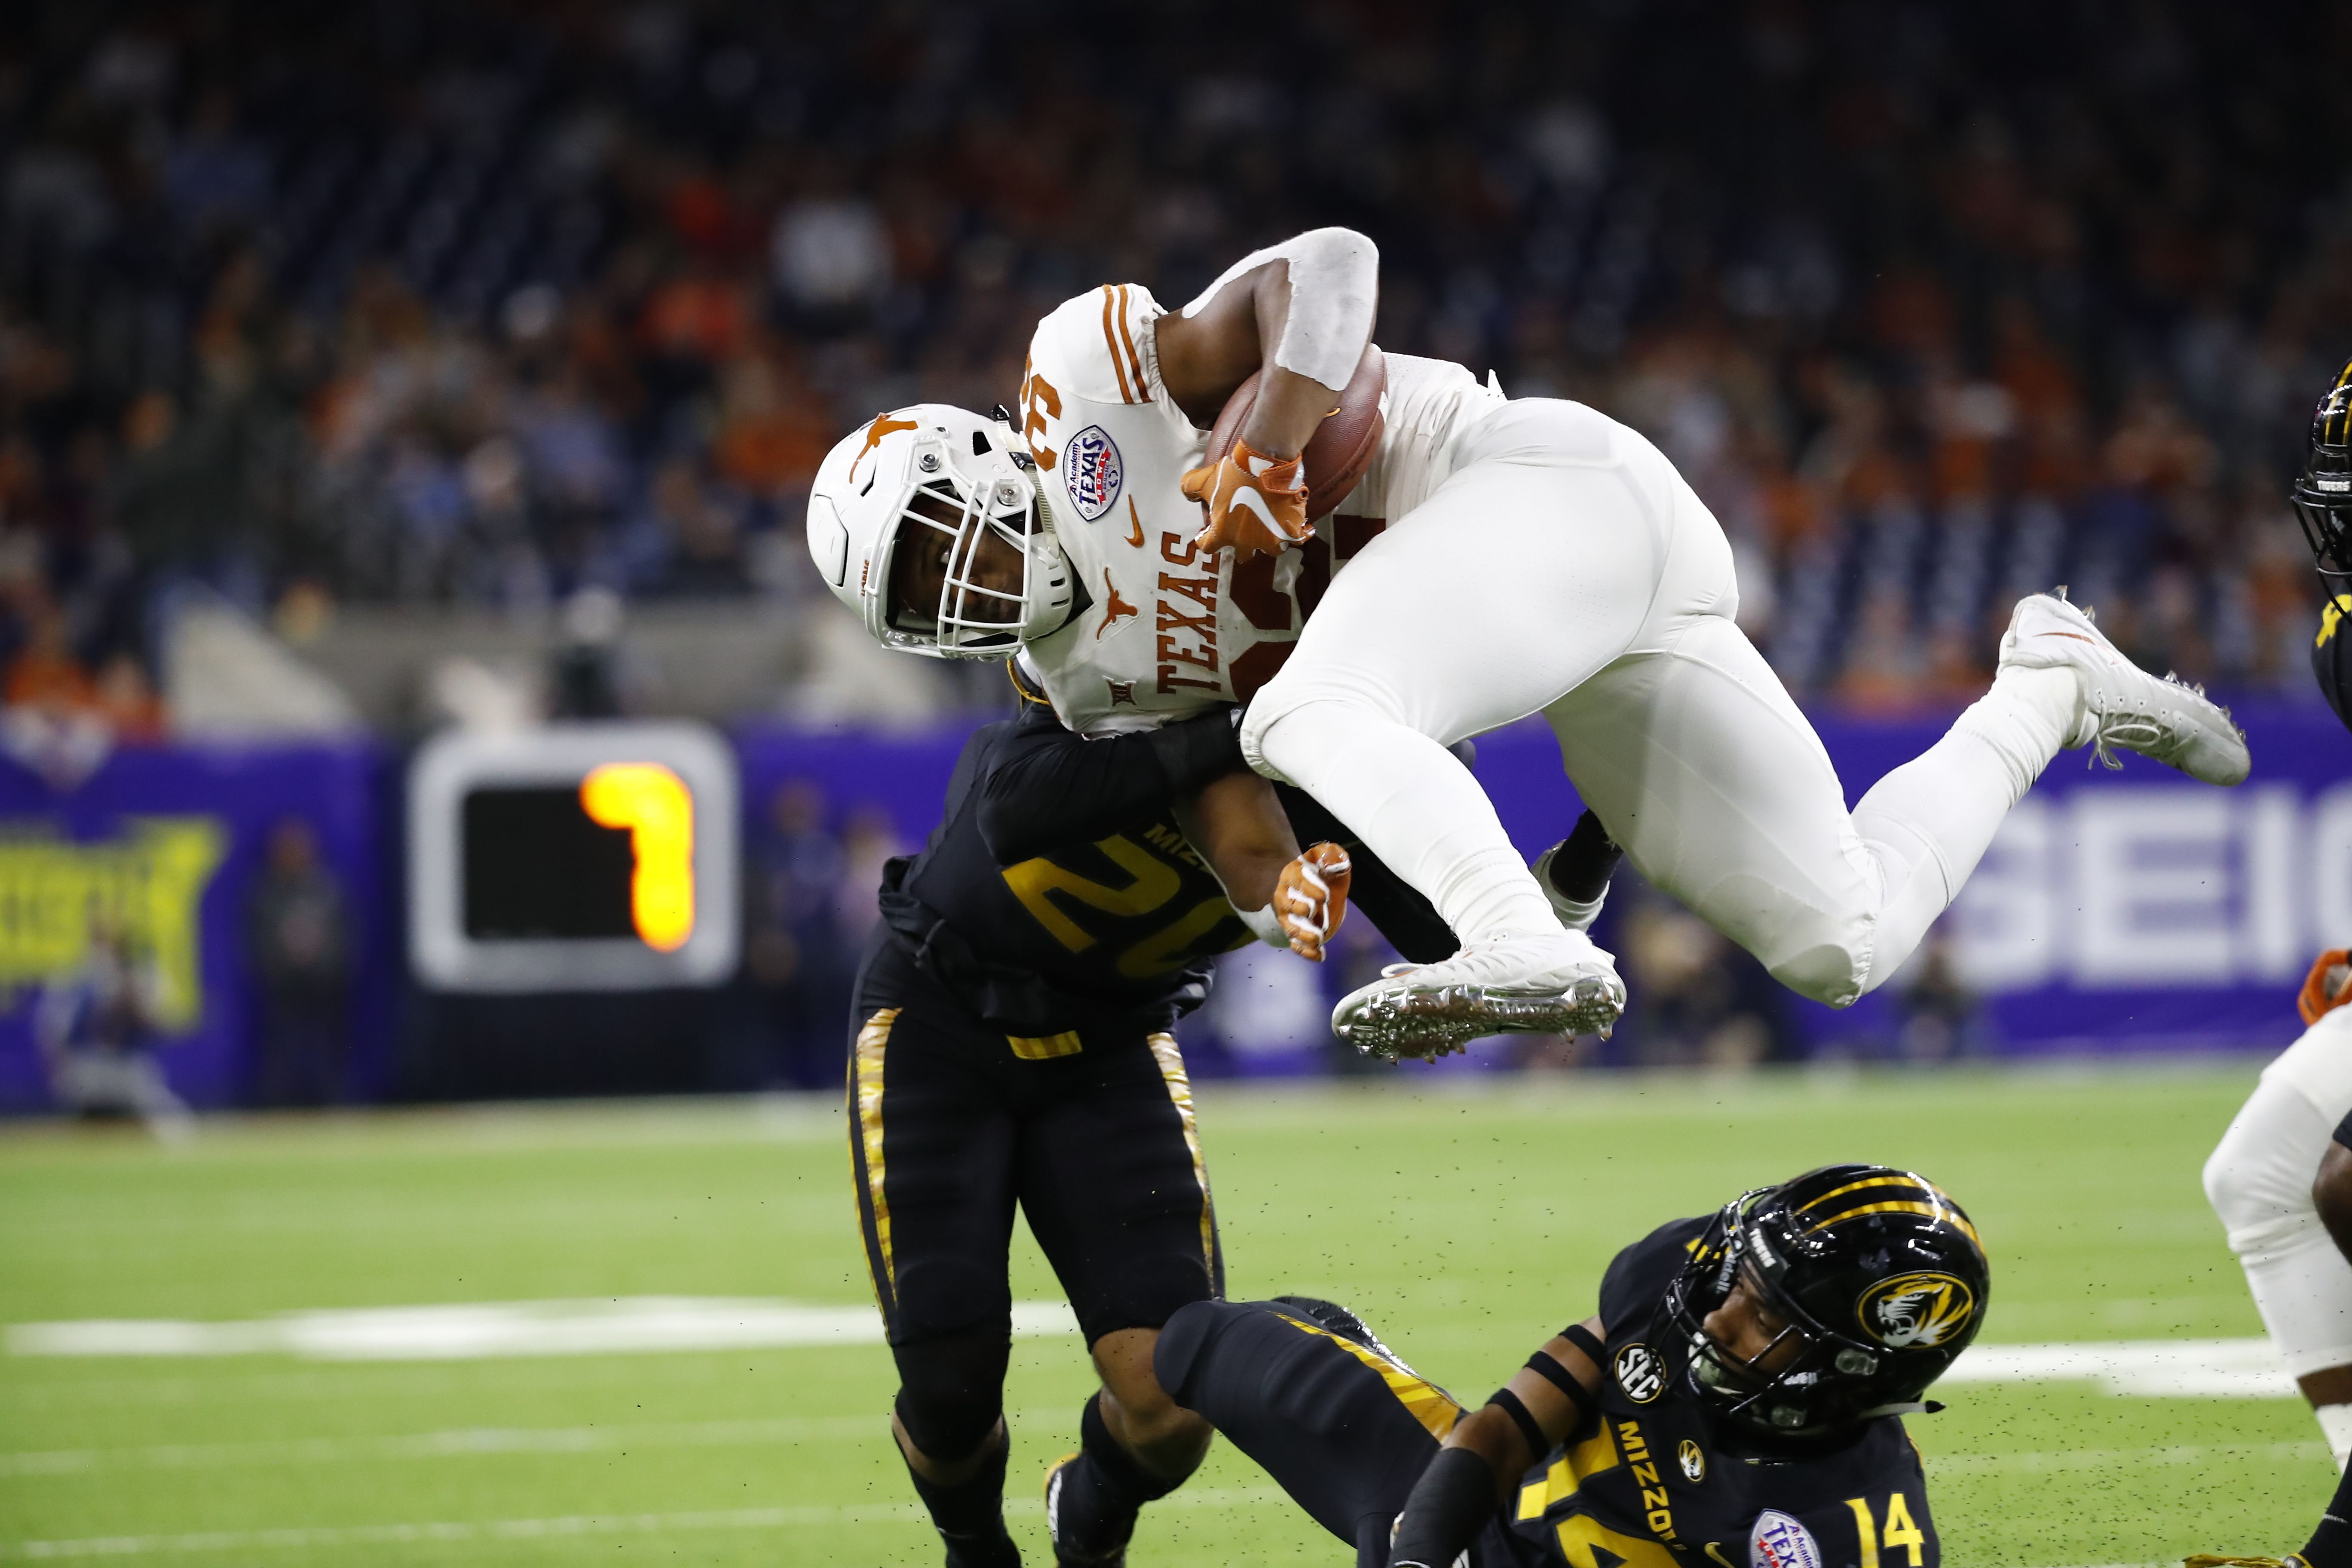 An image from the Dec. 27, 2017 Texas Bowl between the University of Texas and the University of Missouri.